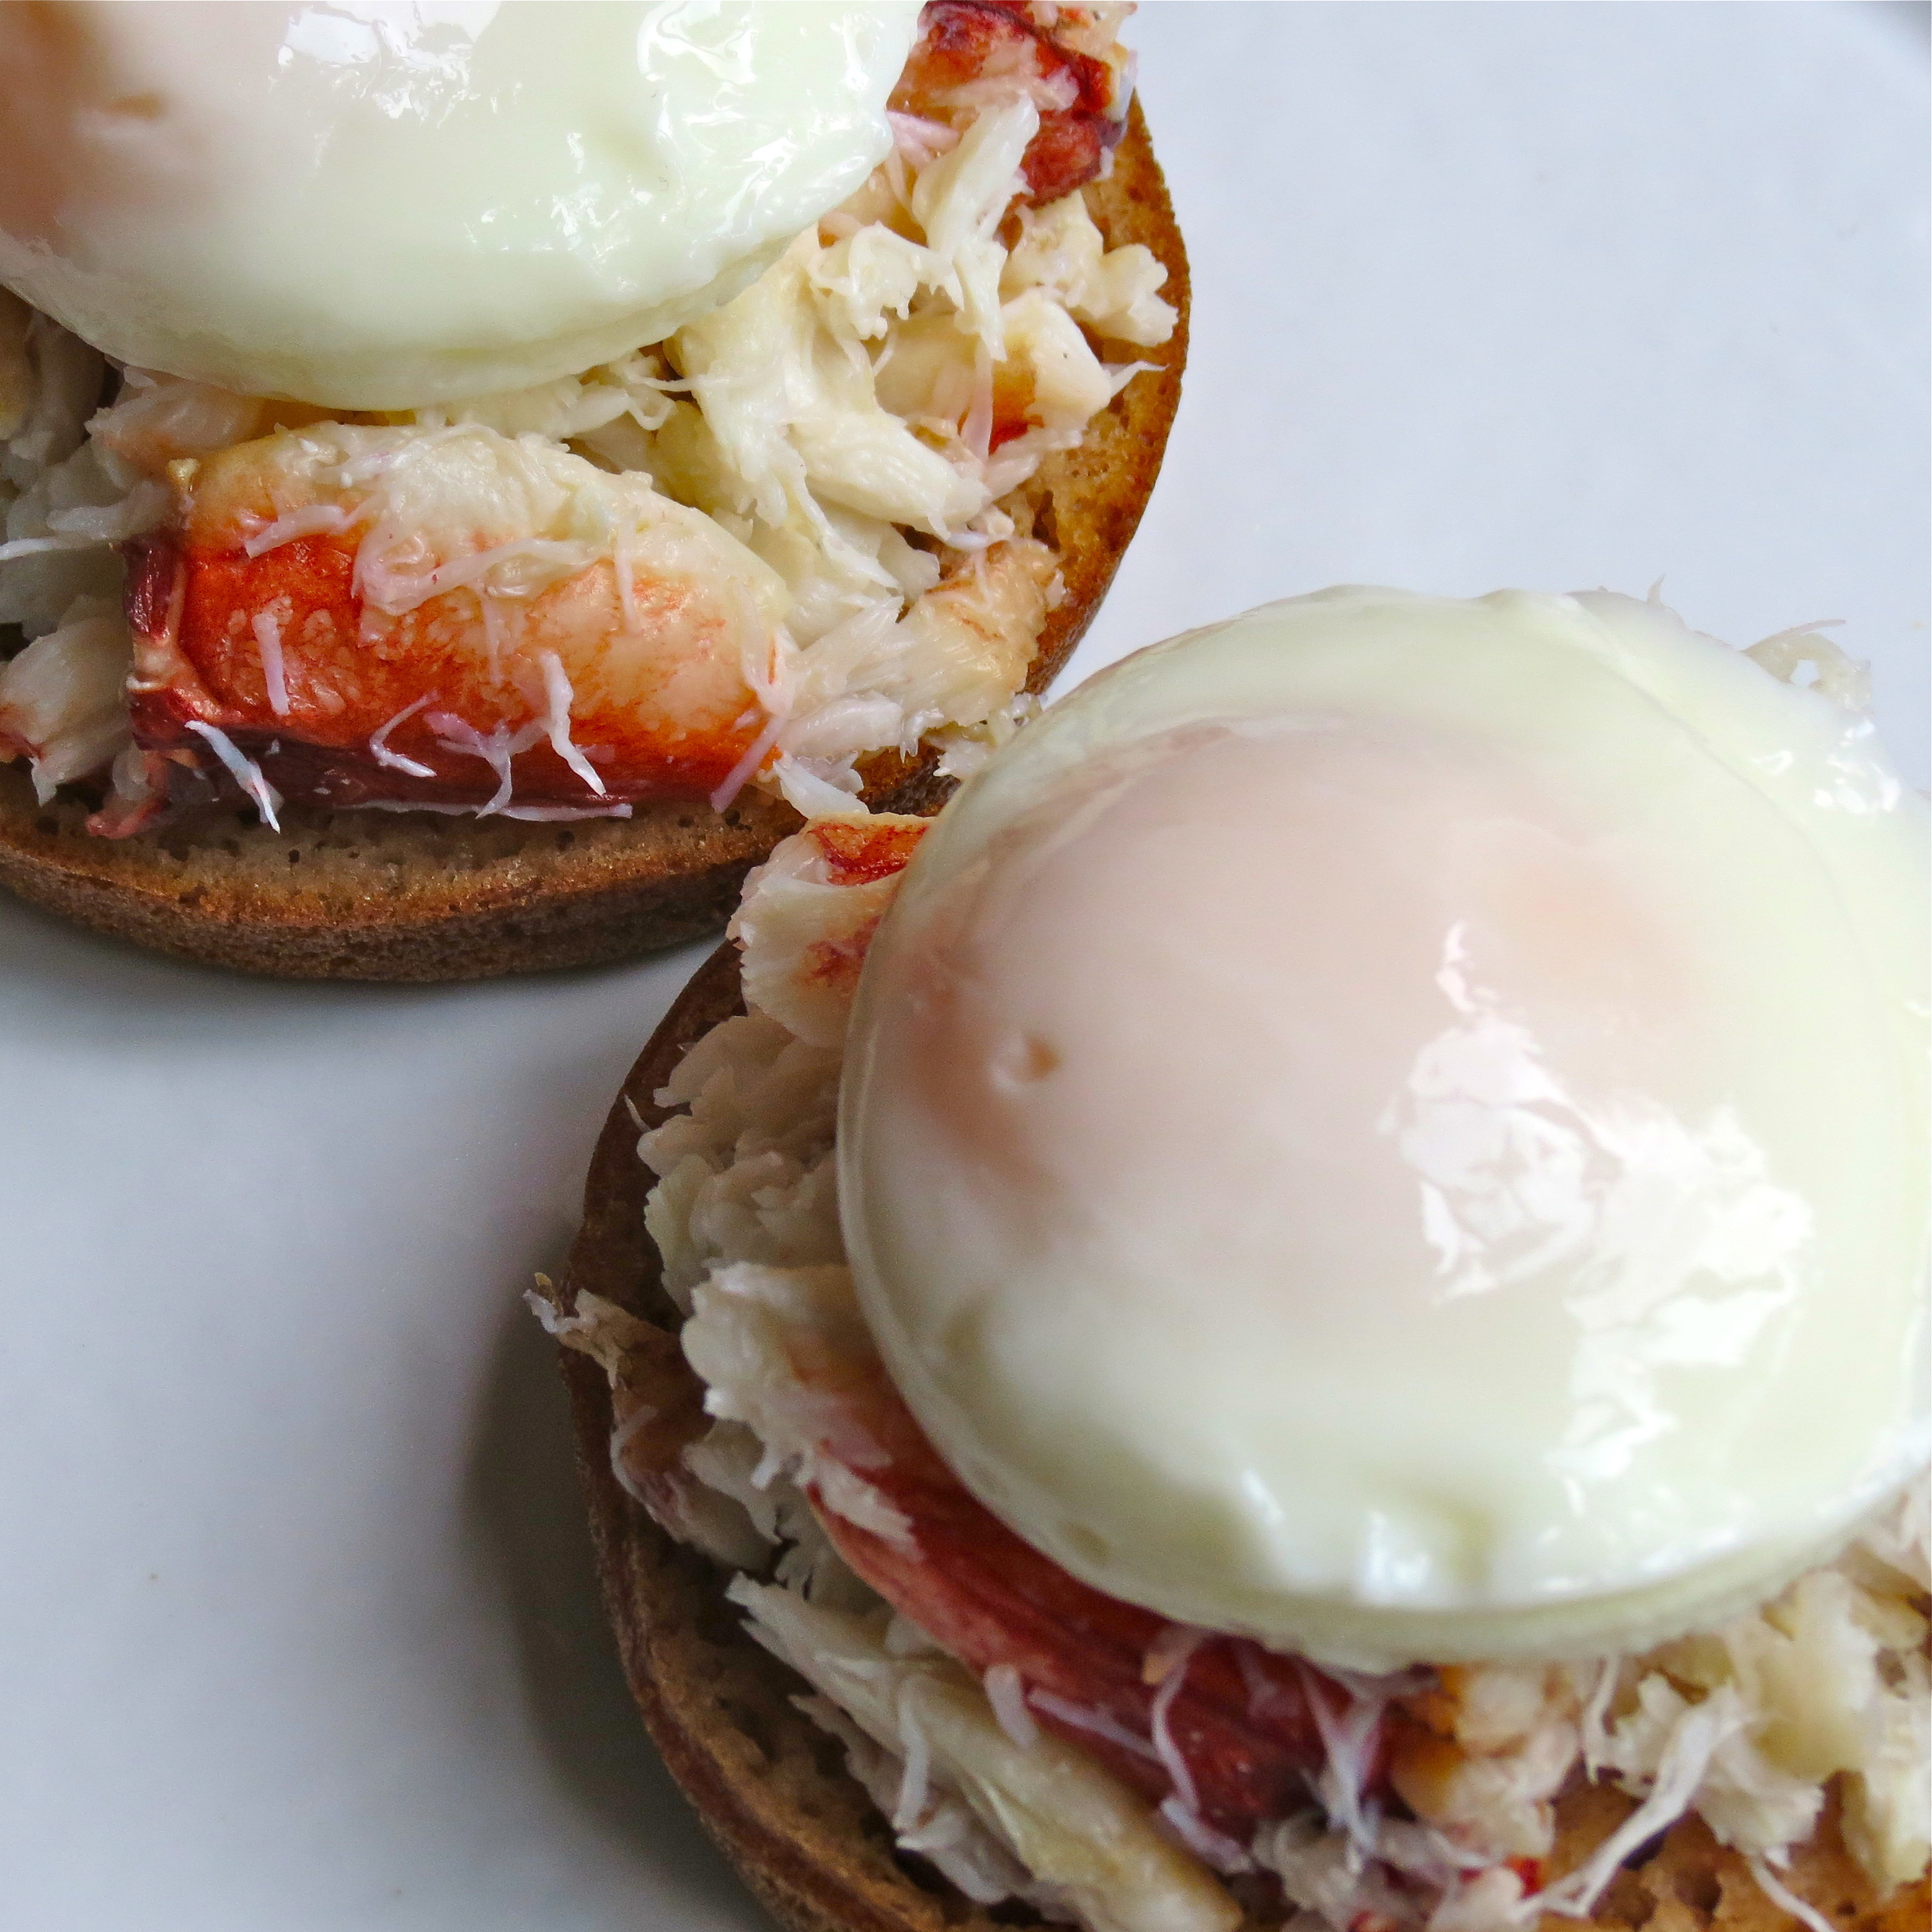 Beautifully poached eggs on top.